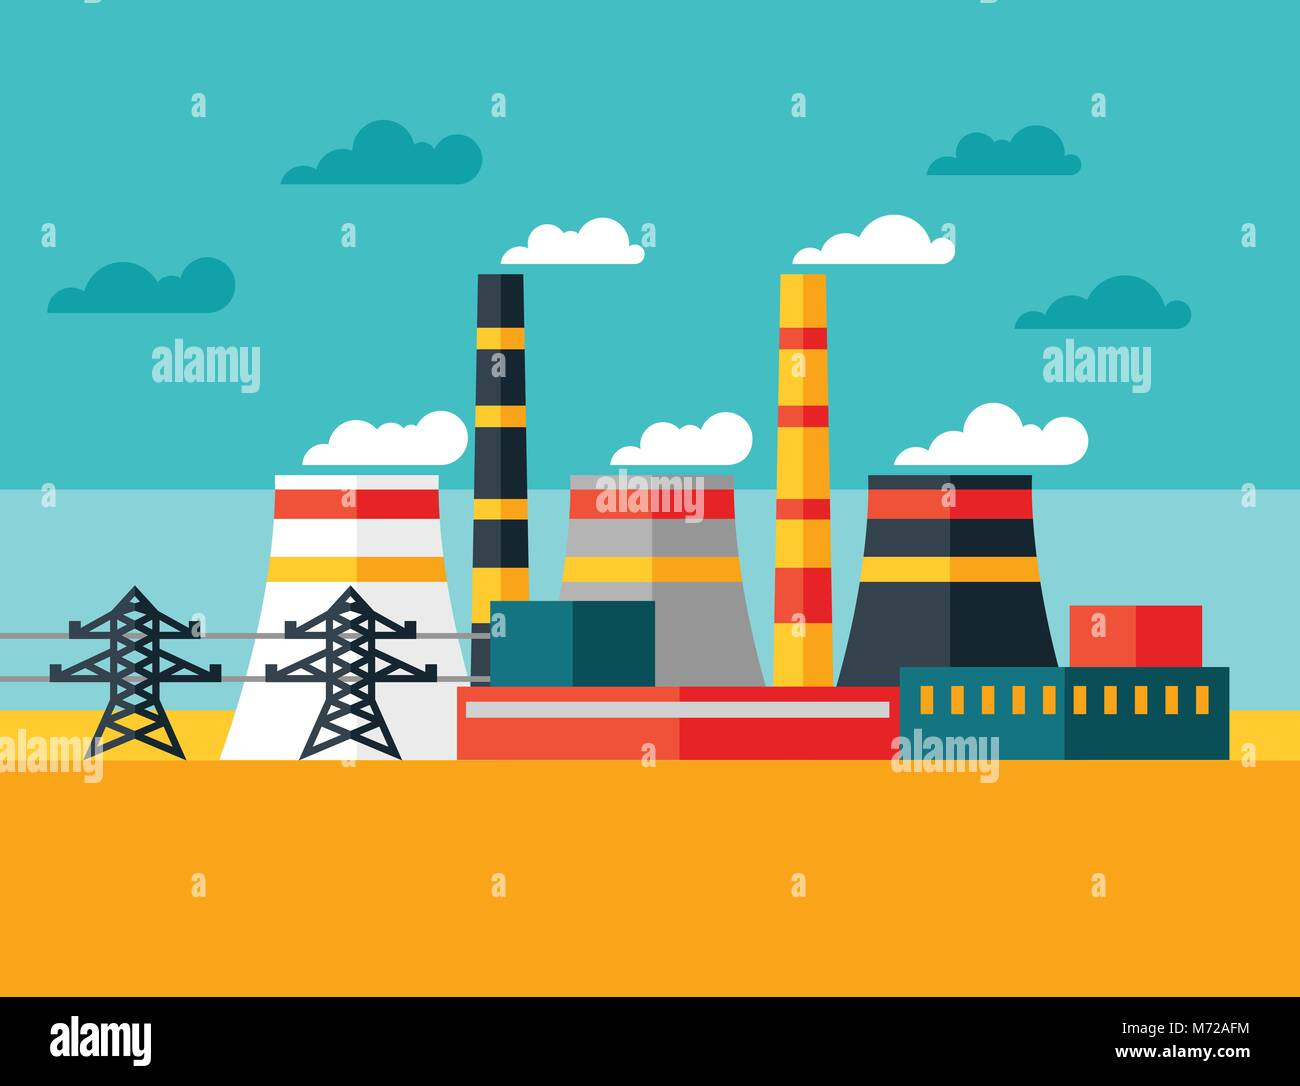 Illustration Of Industrial Power Plant In Flat Style Stock Vector Image Art Alamy